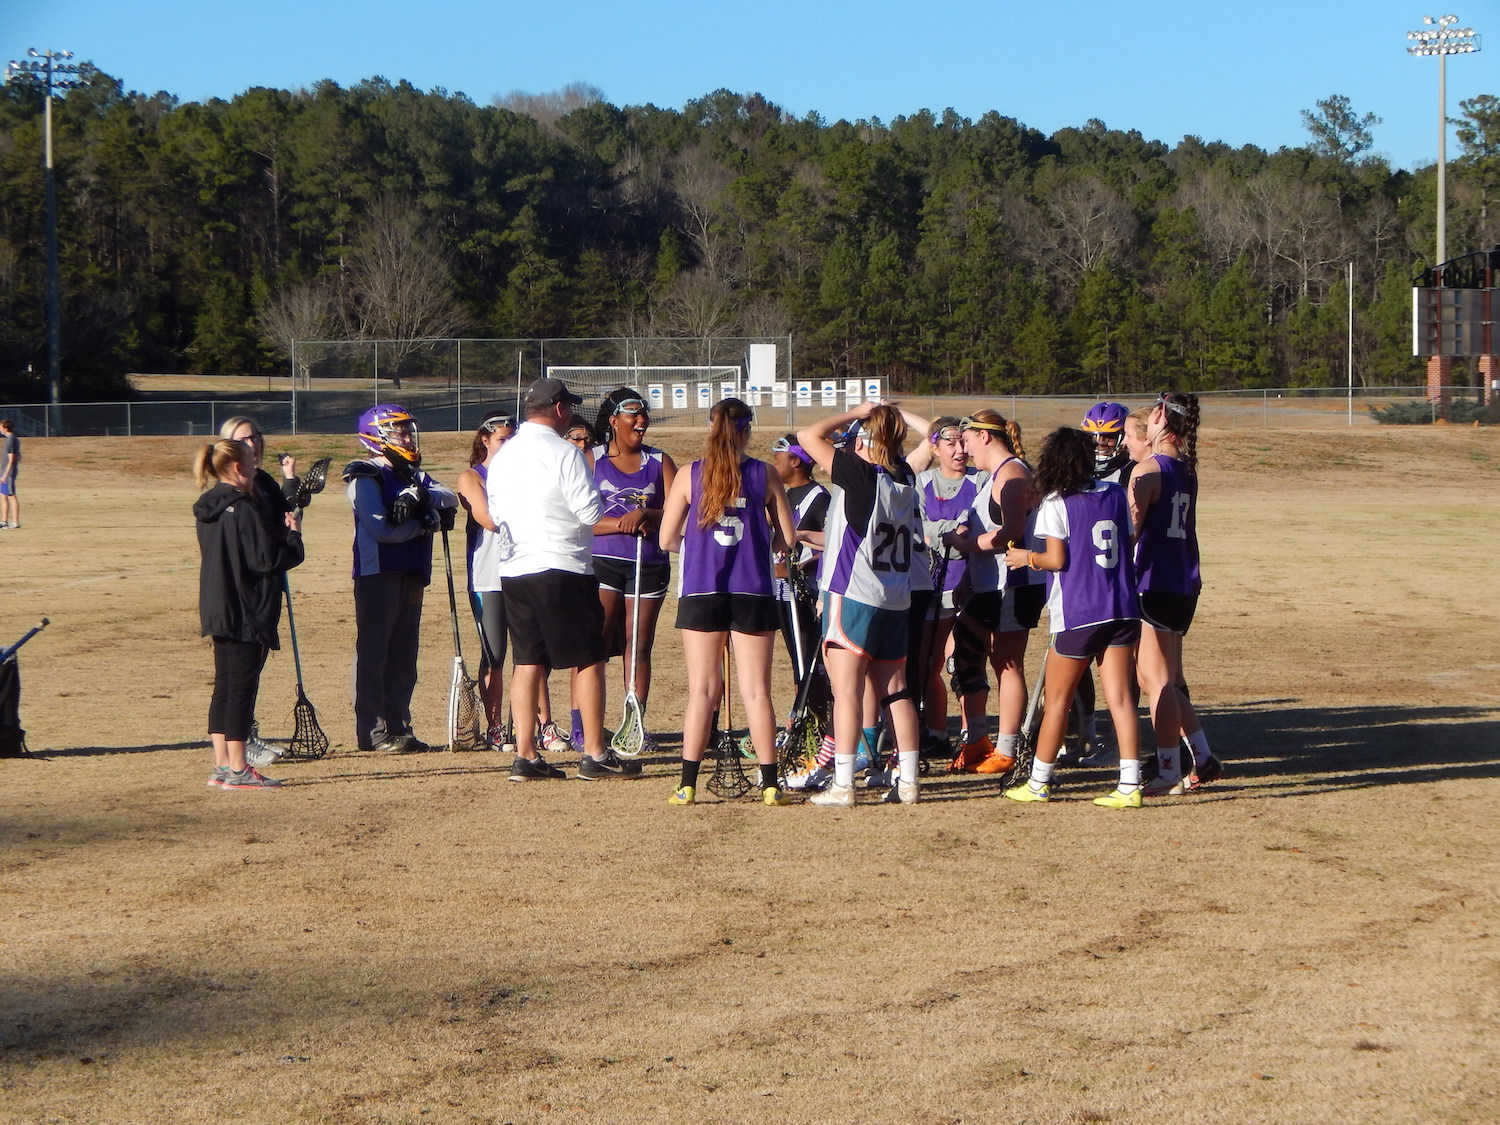 Women's field lacrosse team set to make UM, state history Feb. 5